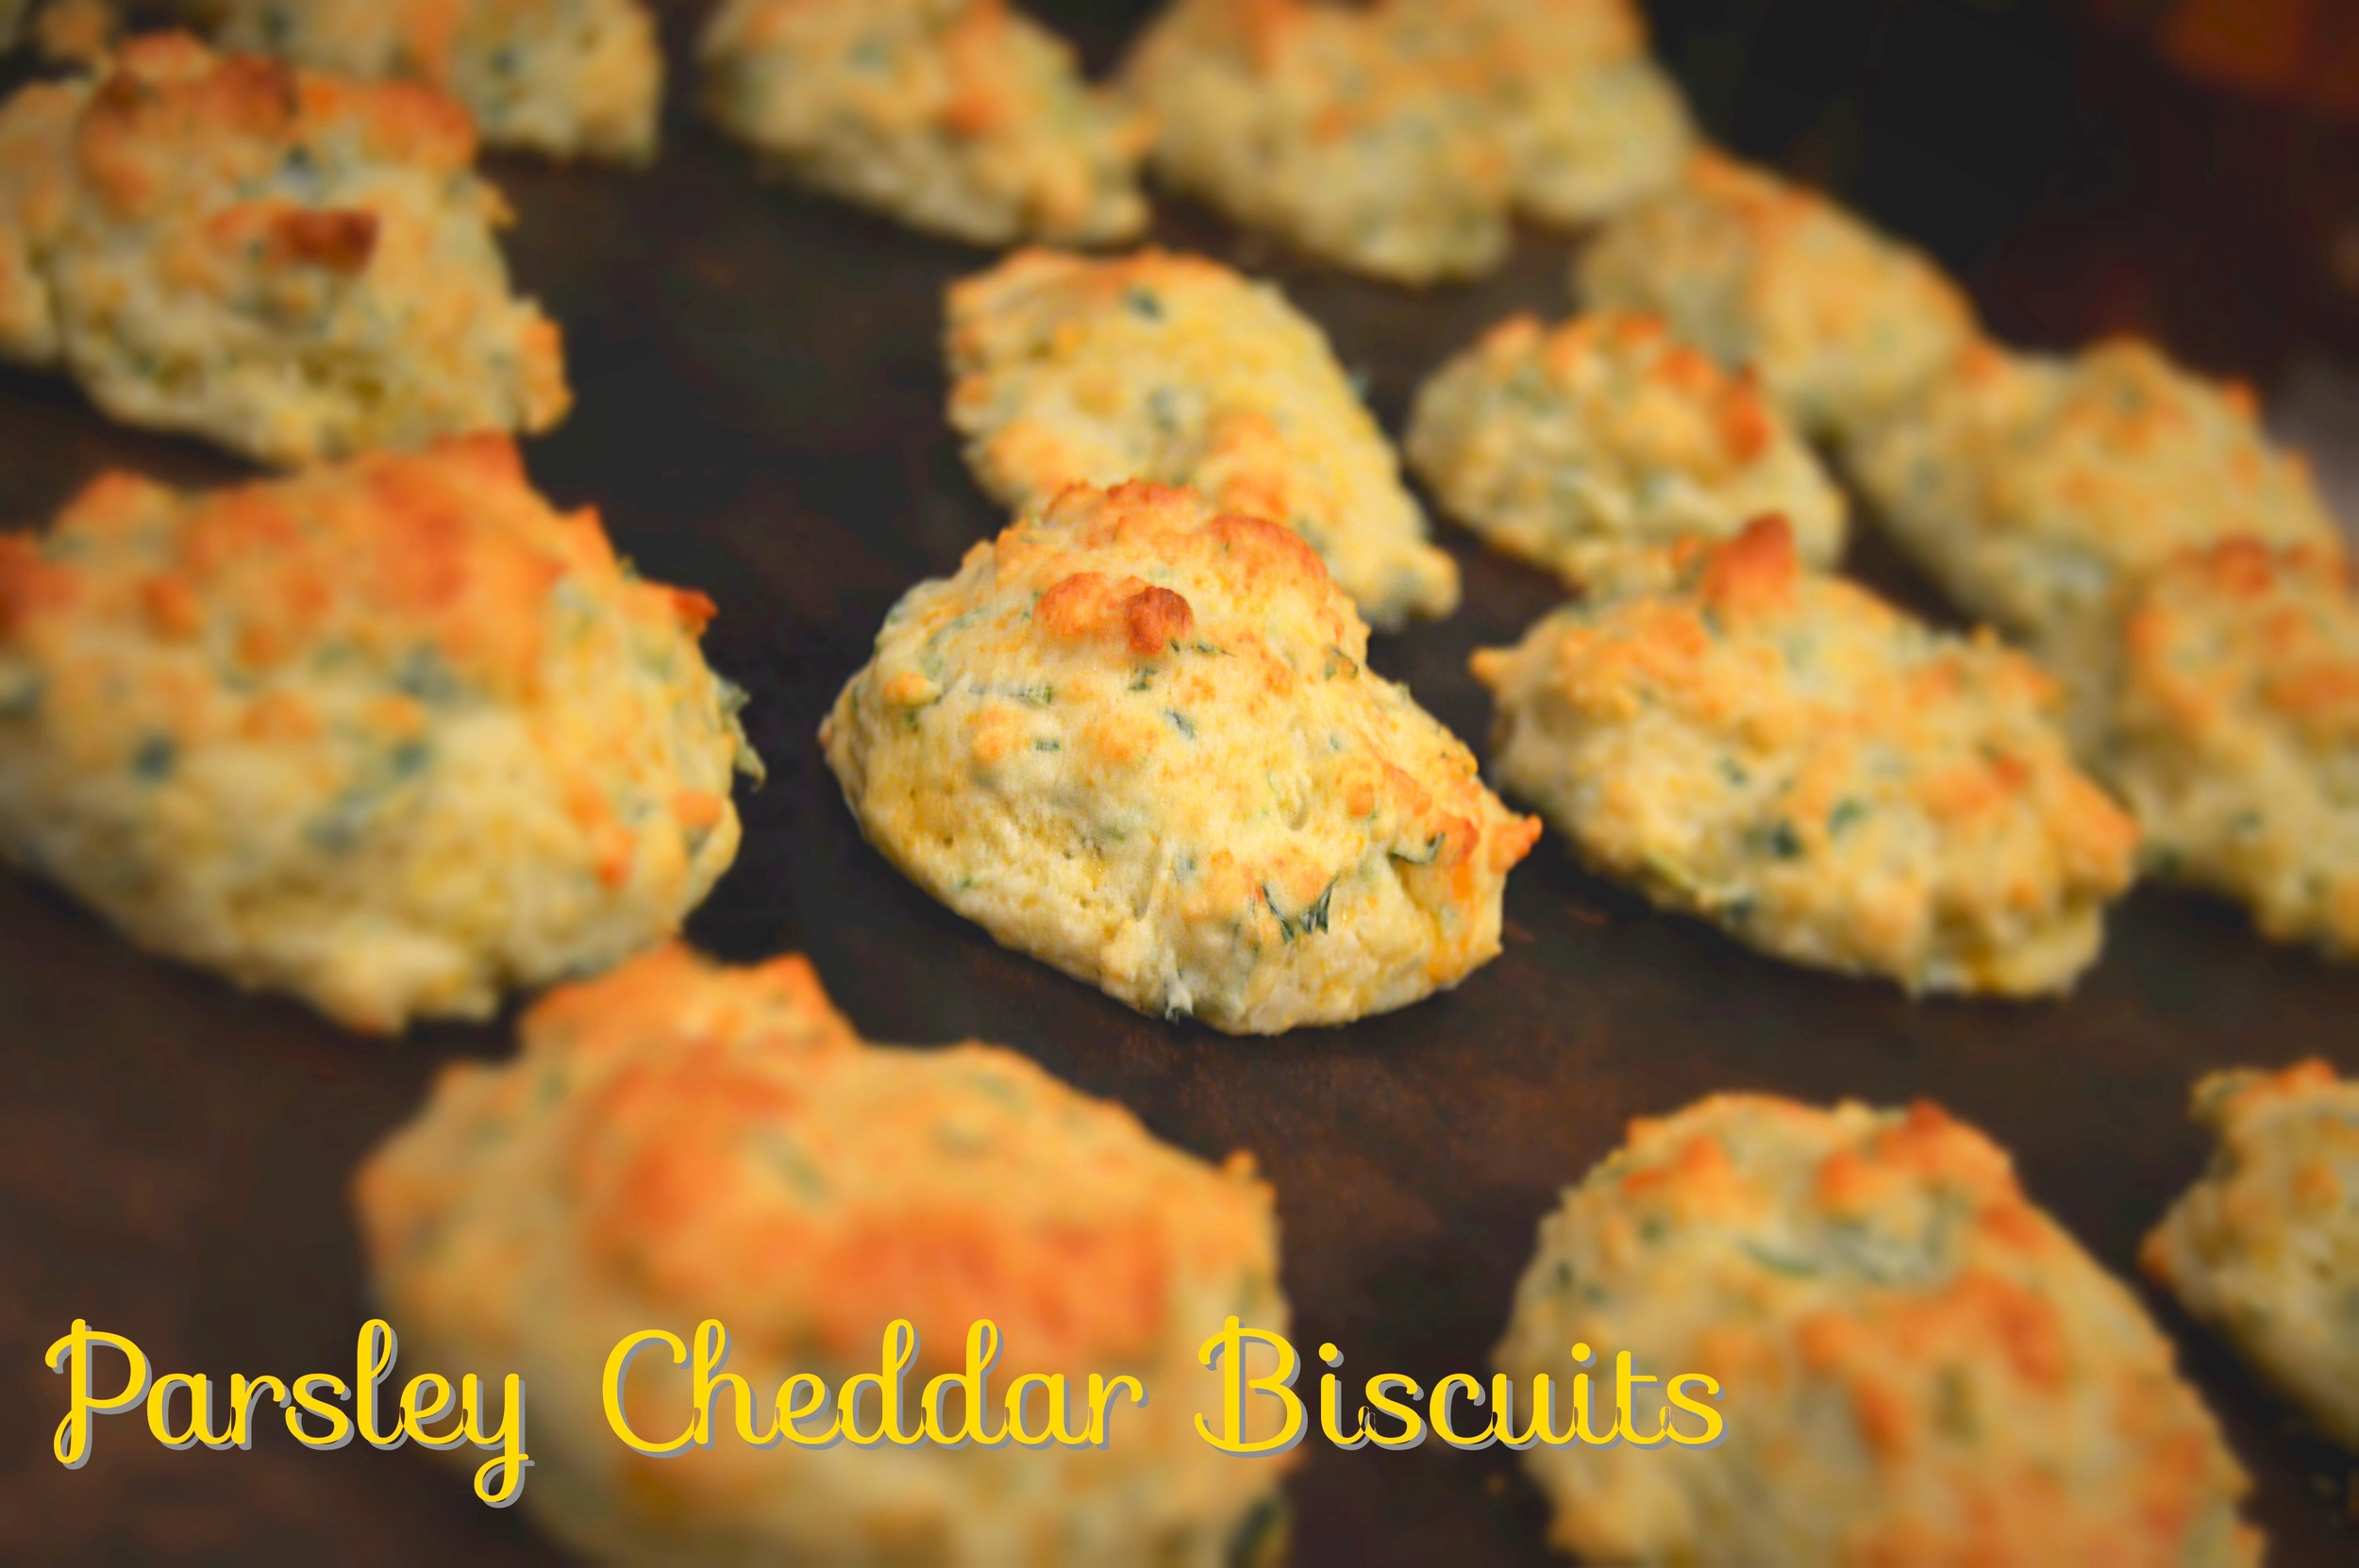 Parsley Cheddar Biscuits